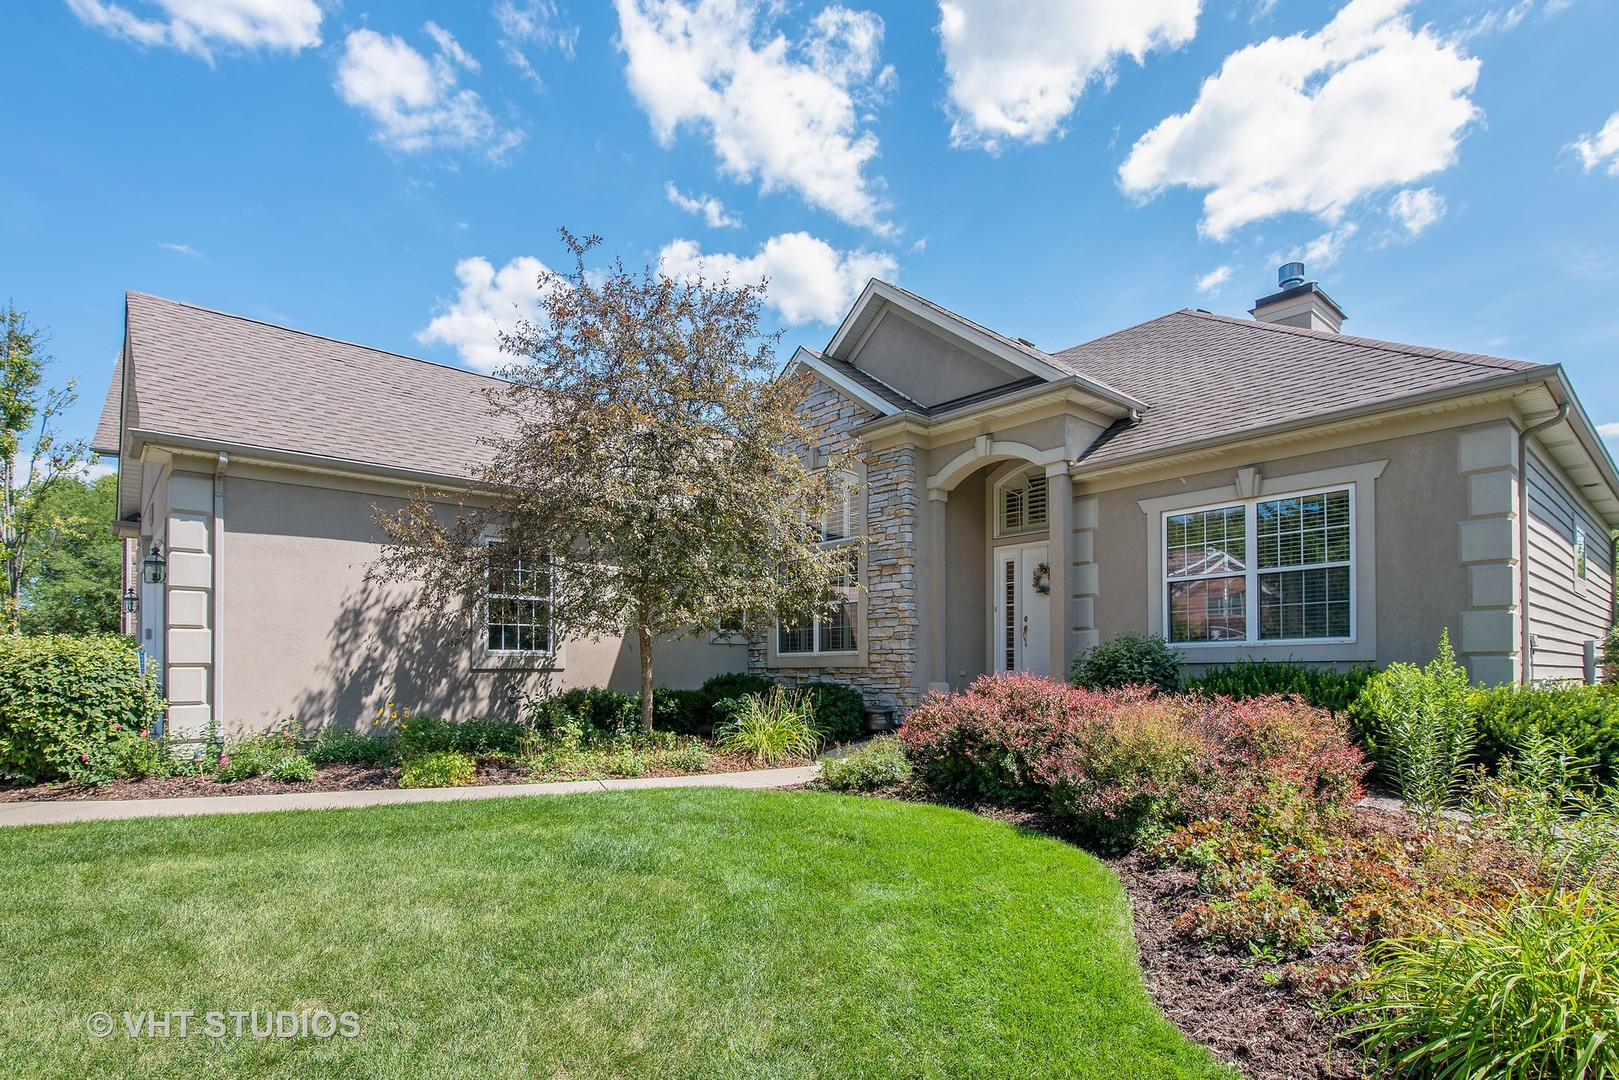 Photo for 722 Wedgewood Drive, CRYSTAL LAKE, IL 60014 (MLS # 10482178)